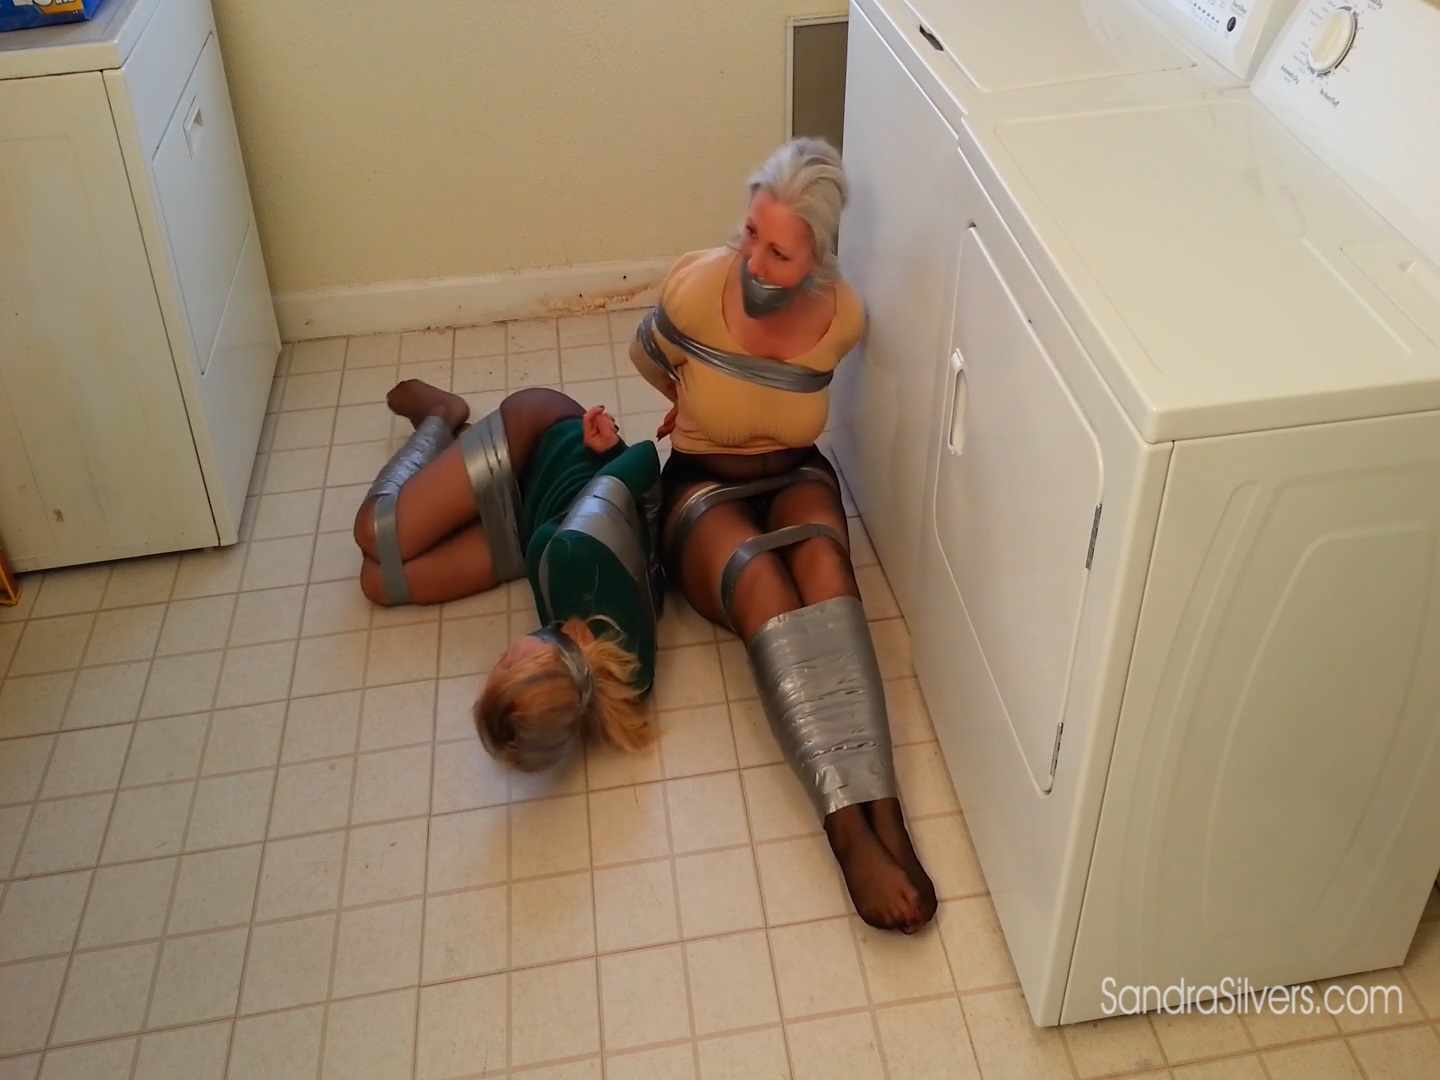 Pantyhose Peril when MILF Roommates Are Duct Taped in the Laundry 1857